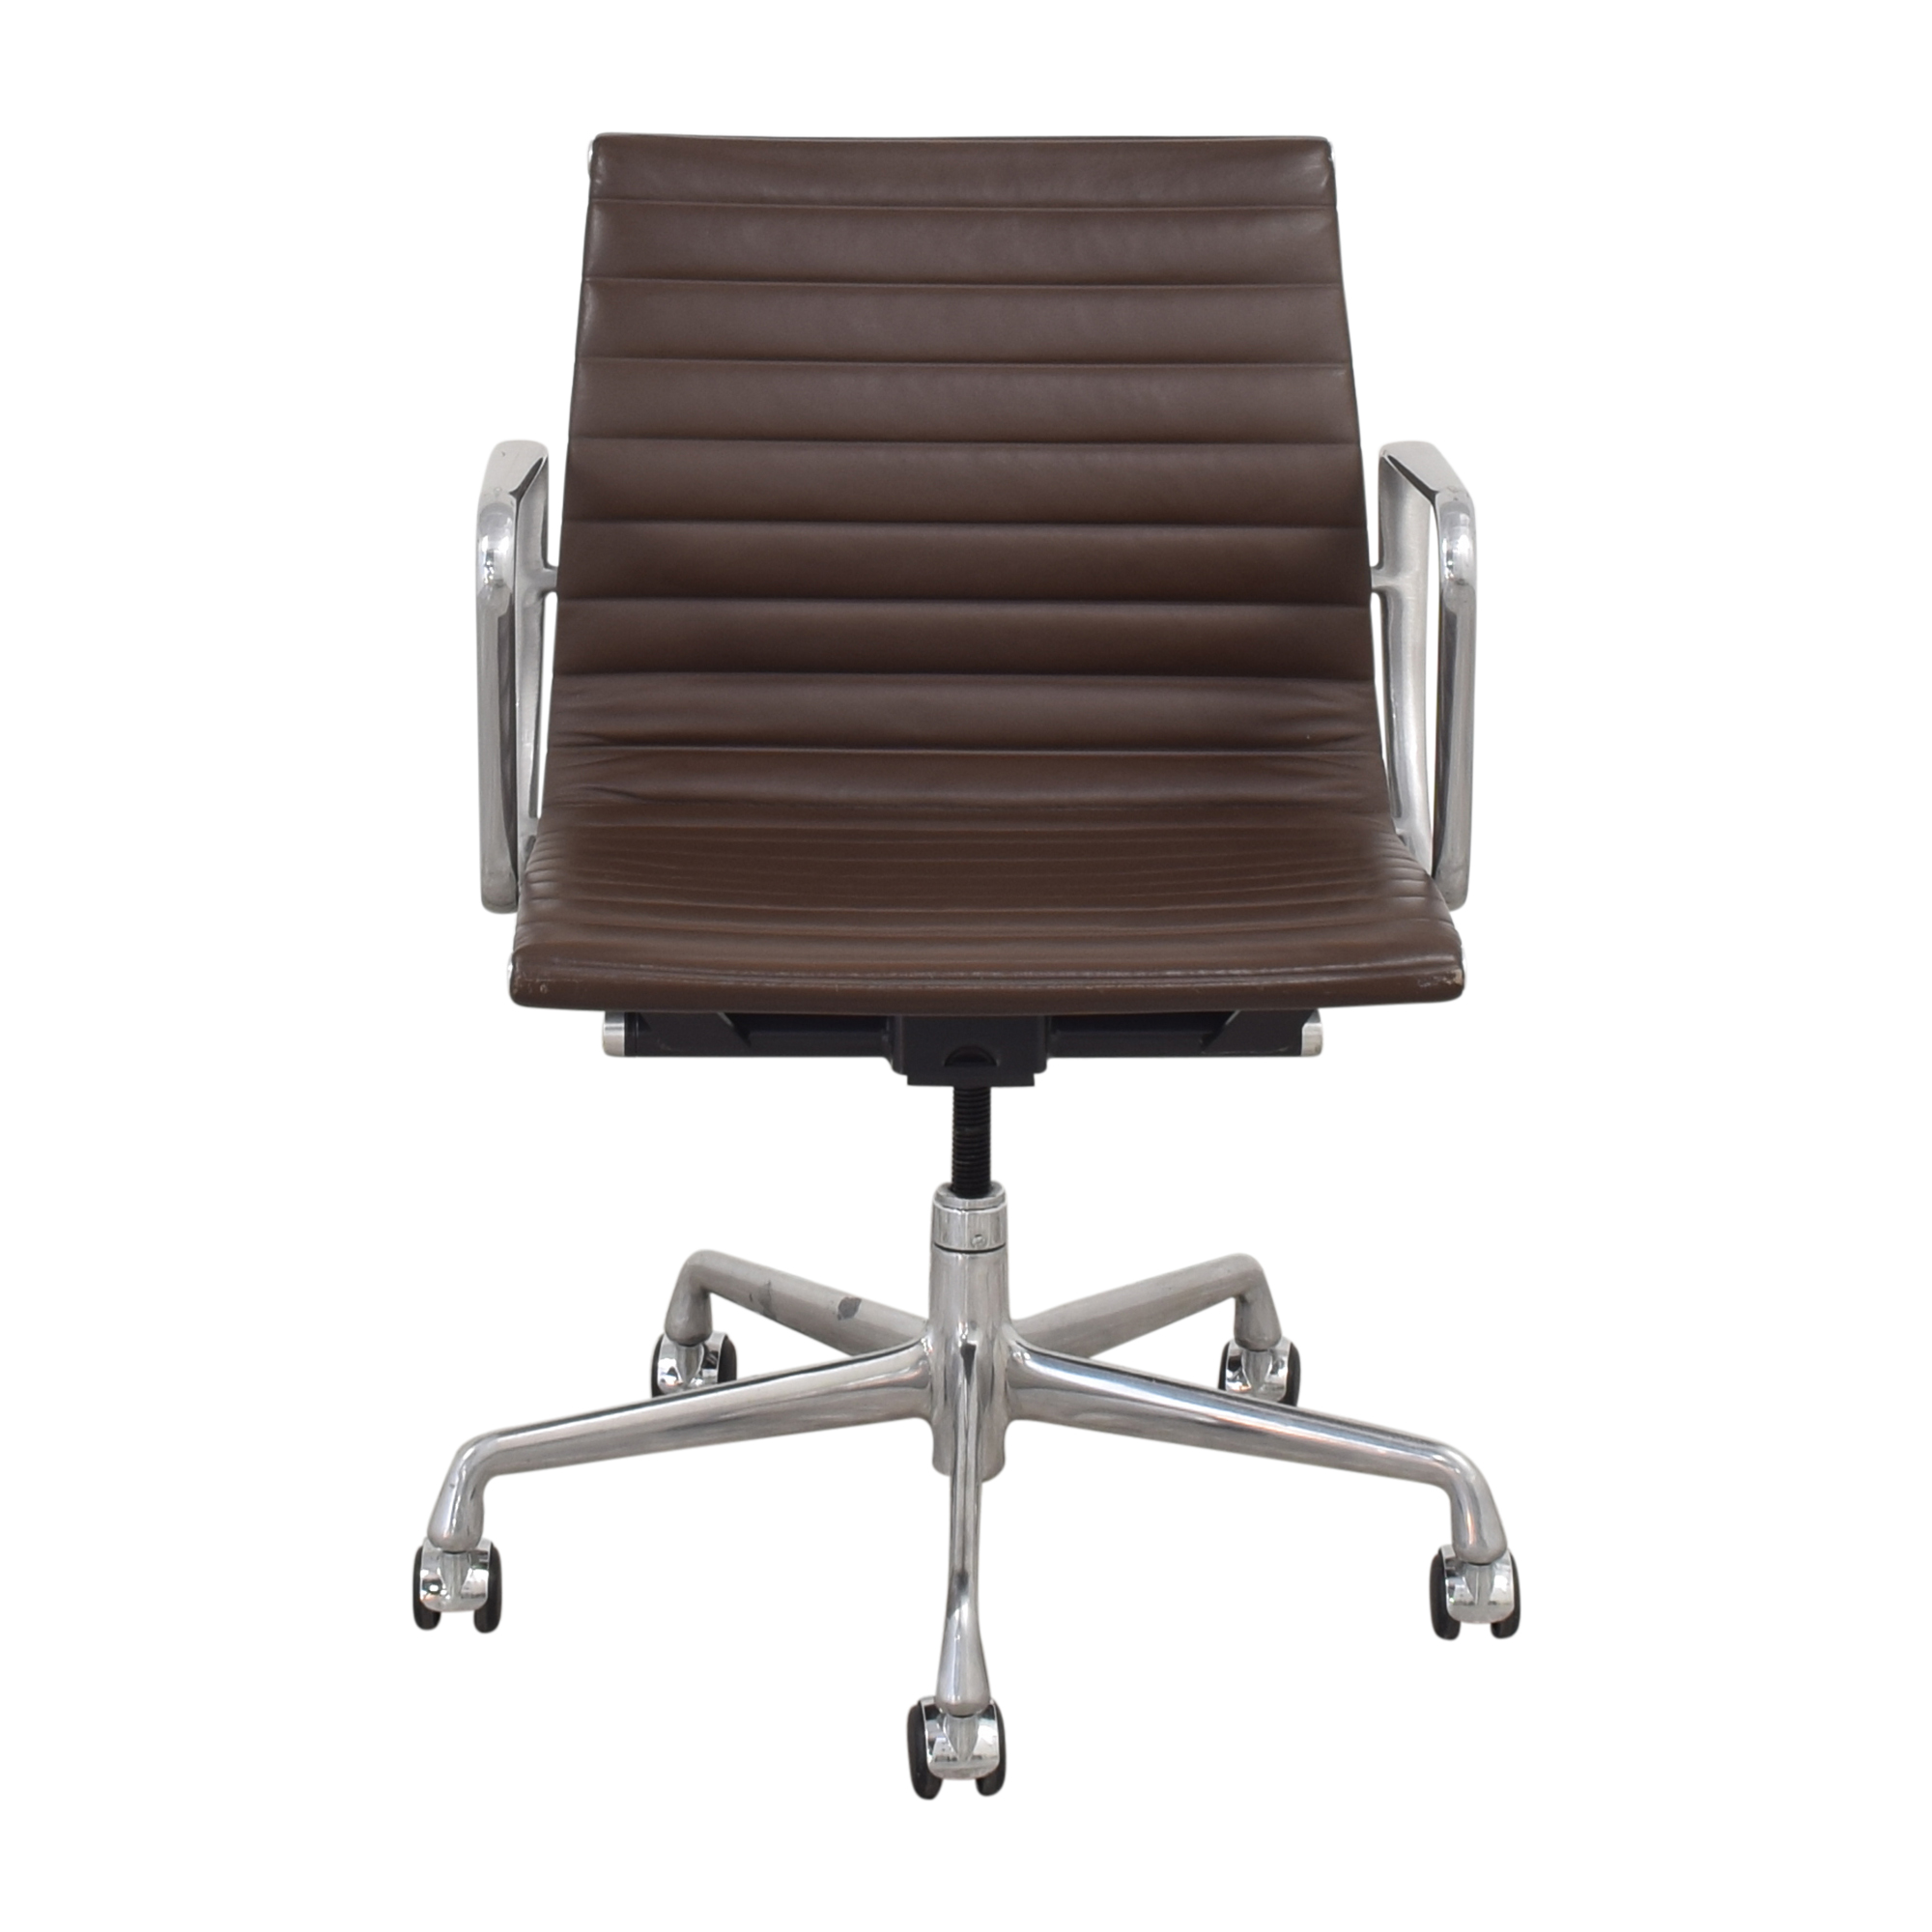 Herman Miller Herman Miller Eames Aluminum Group Management Chair ma